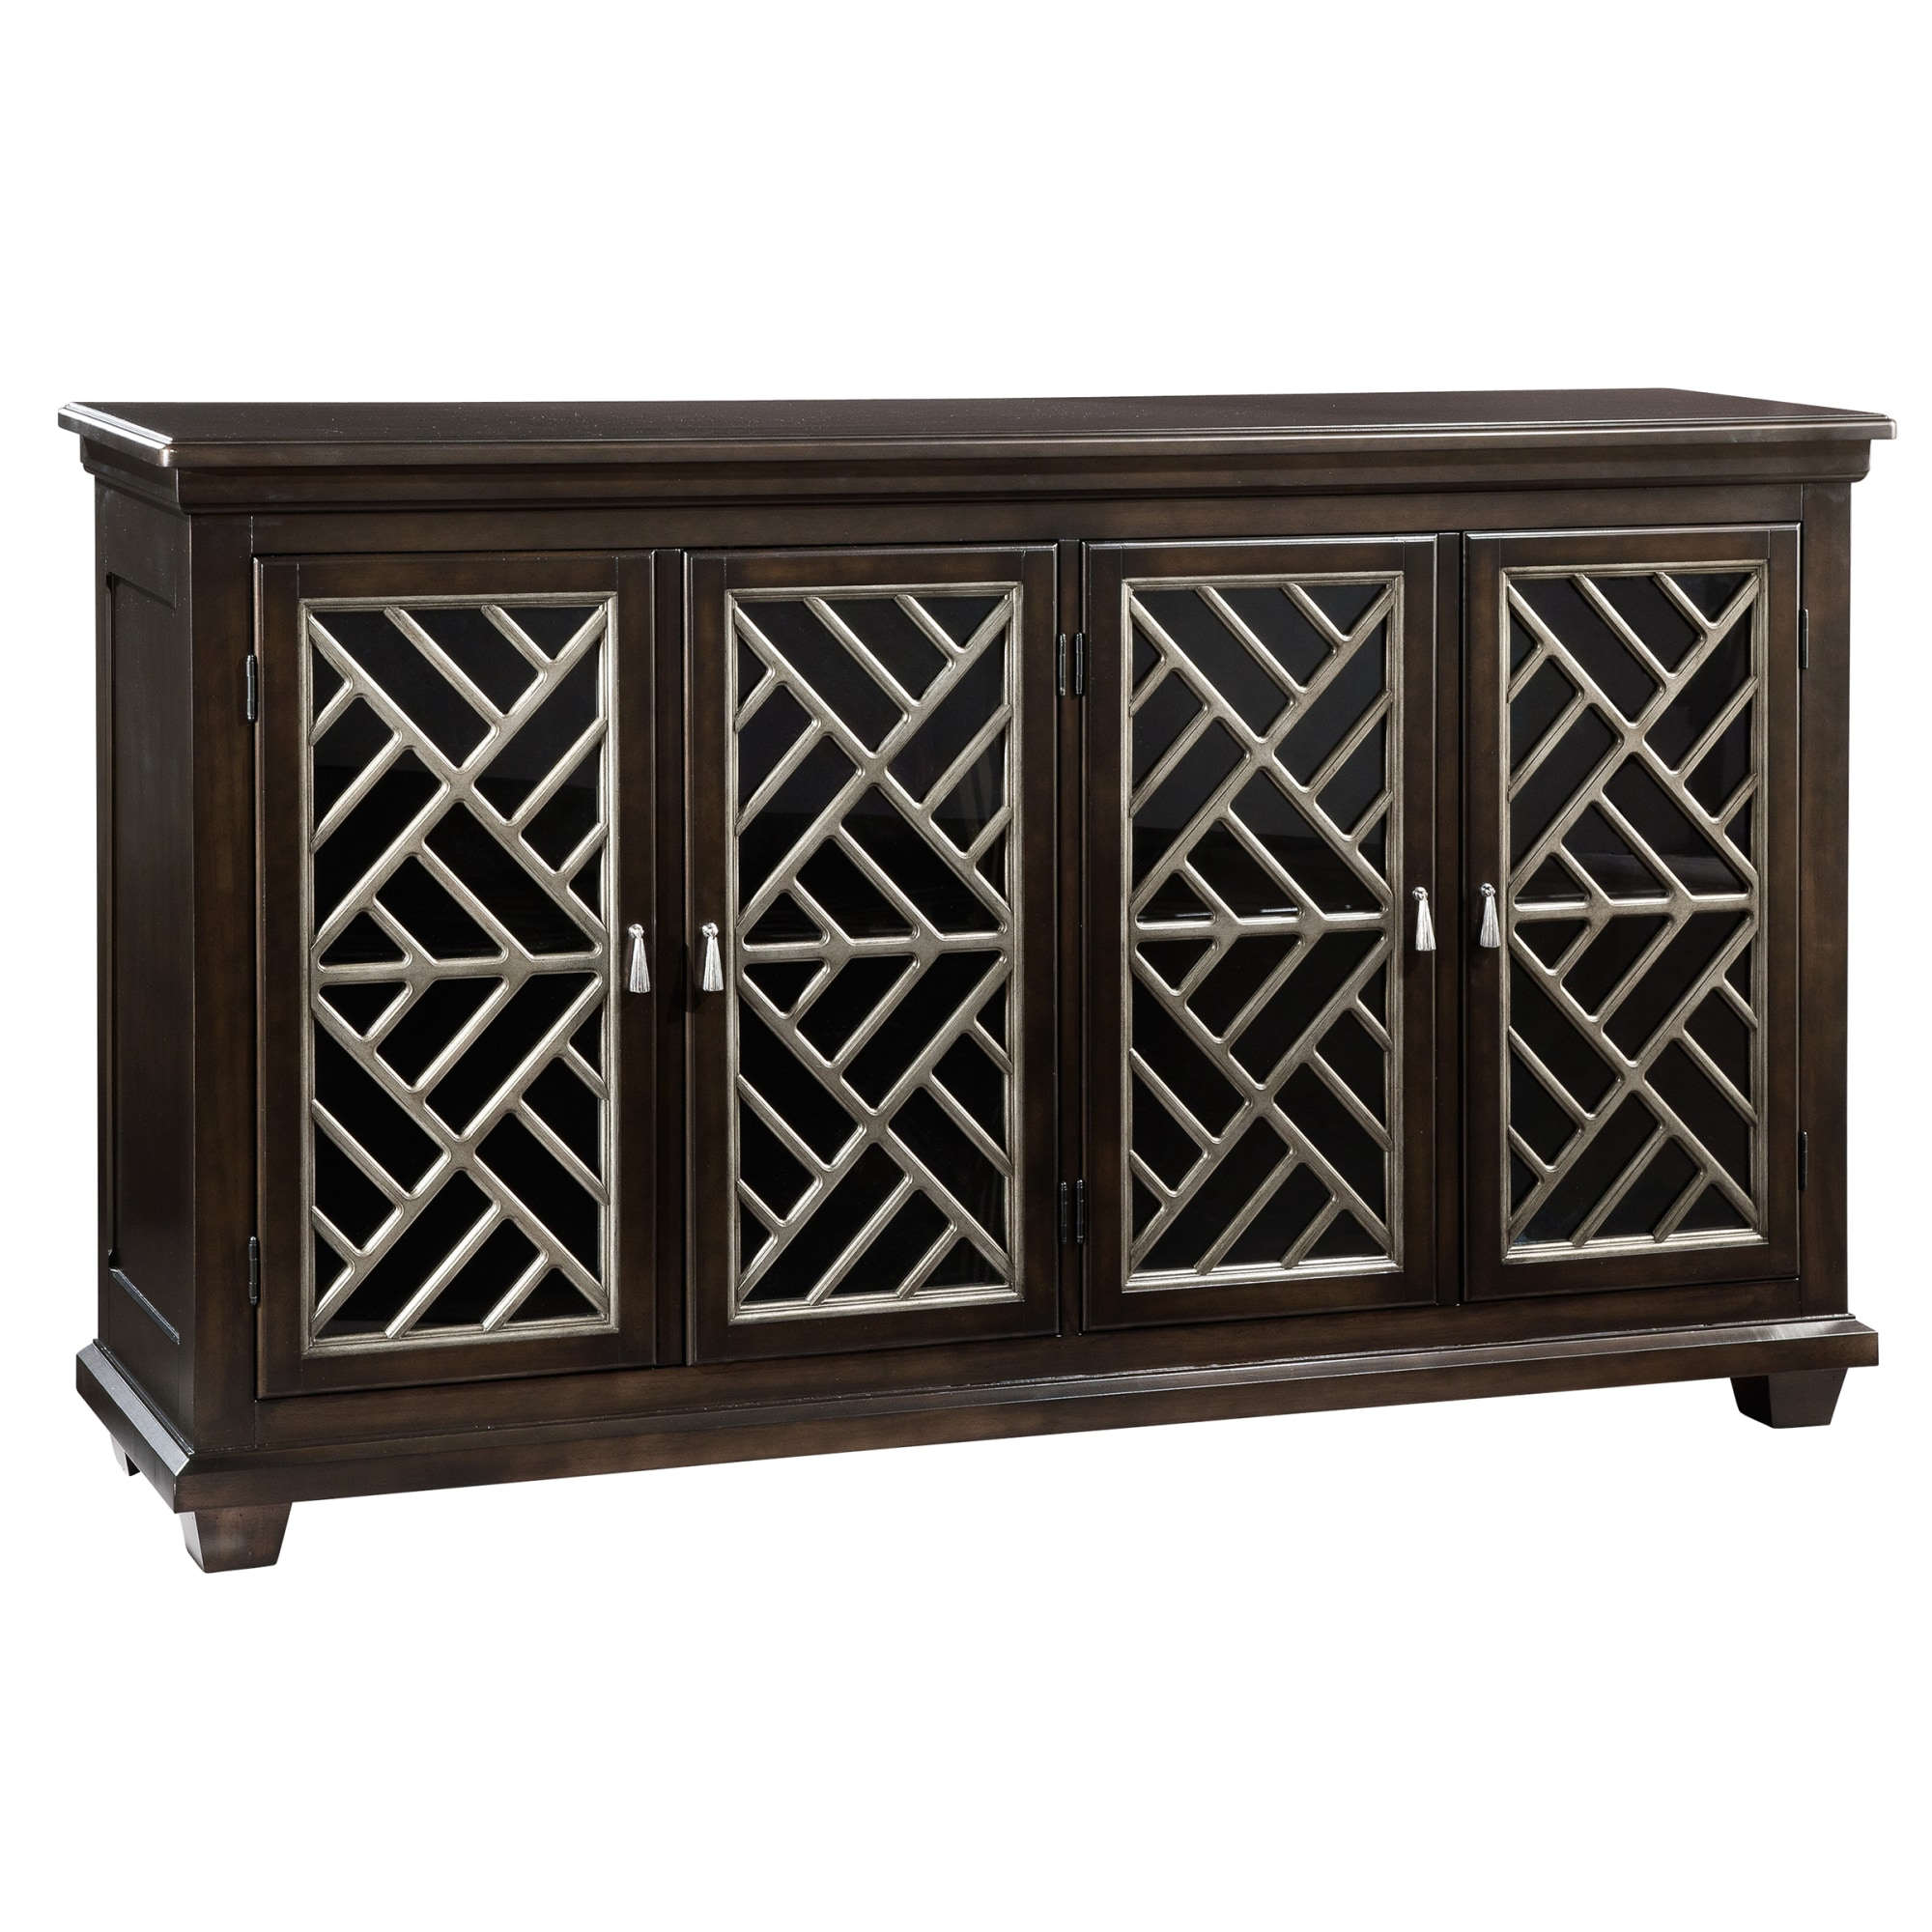 Image for 2-7300 Transitional Entertainment Console from Hekman Official Website